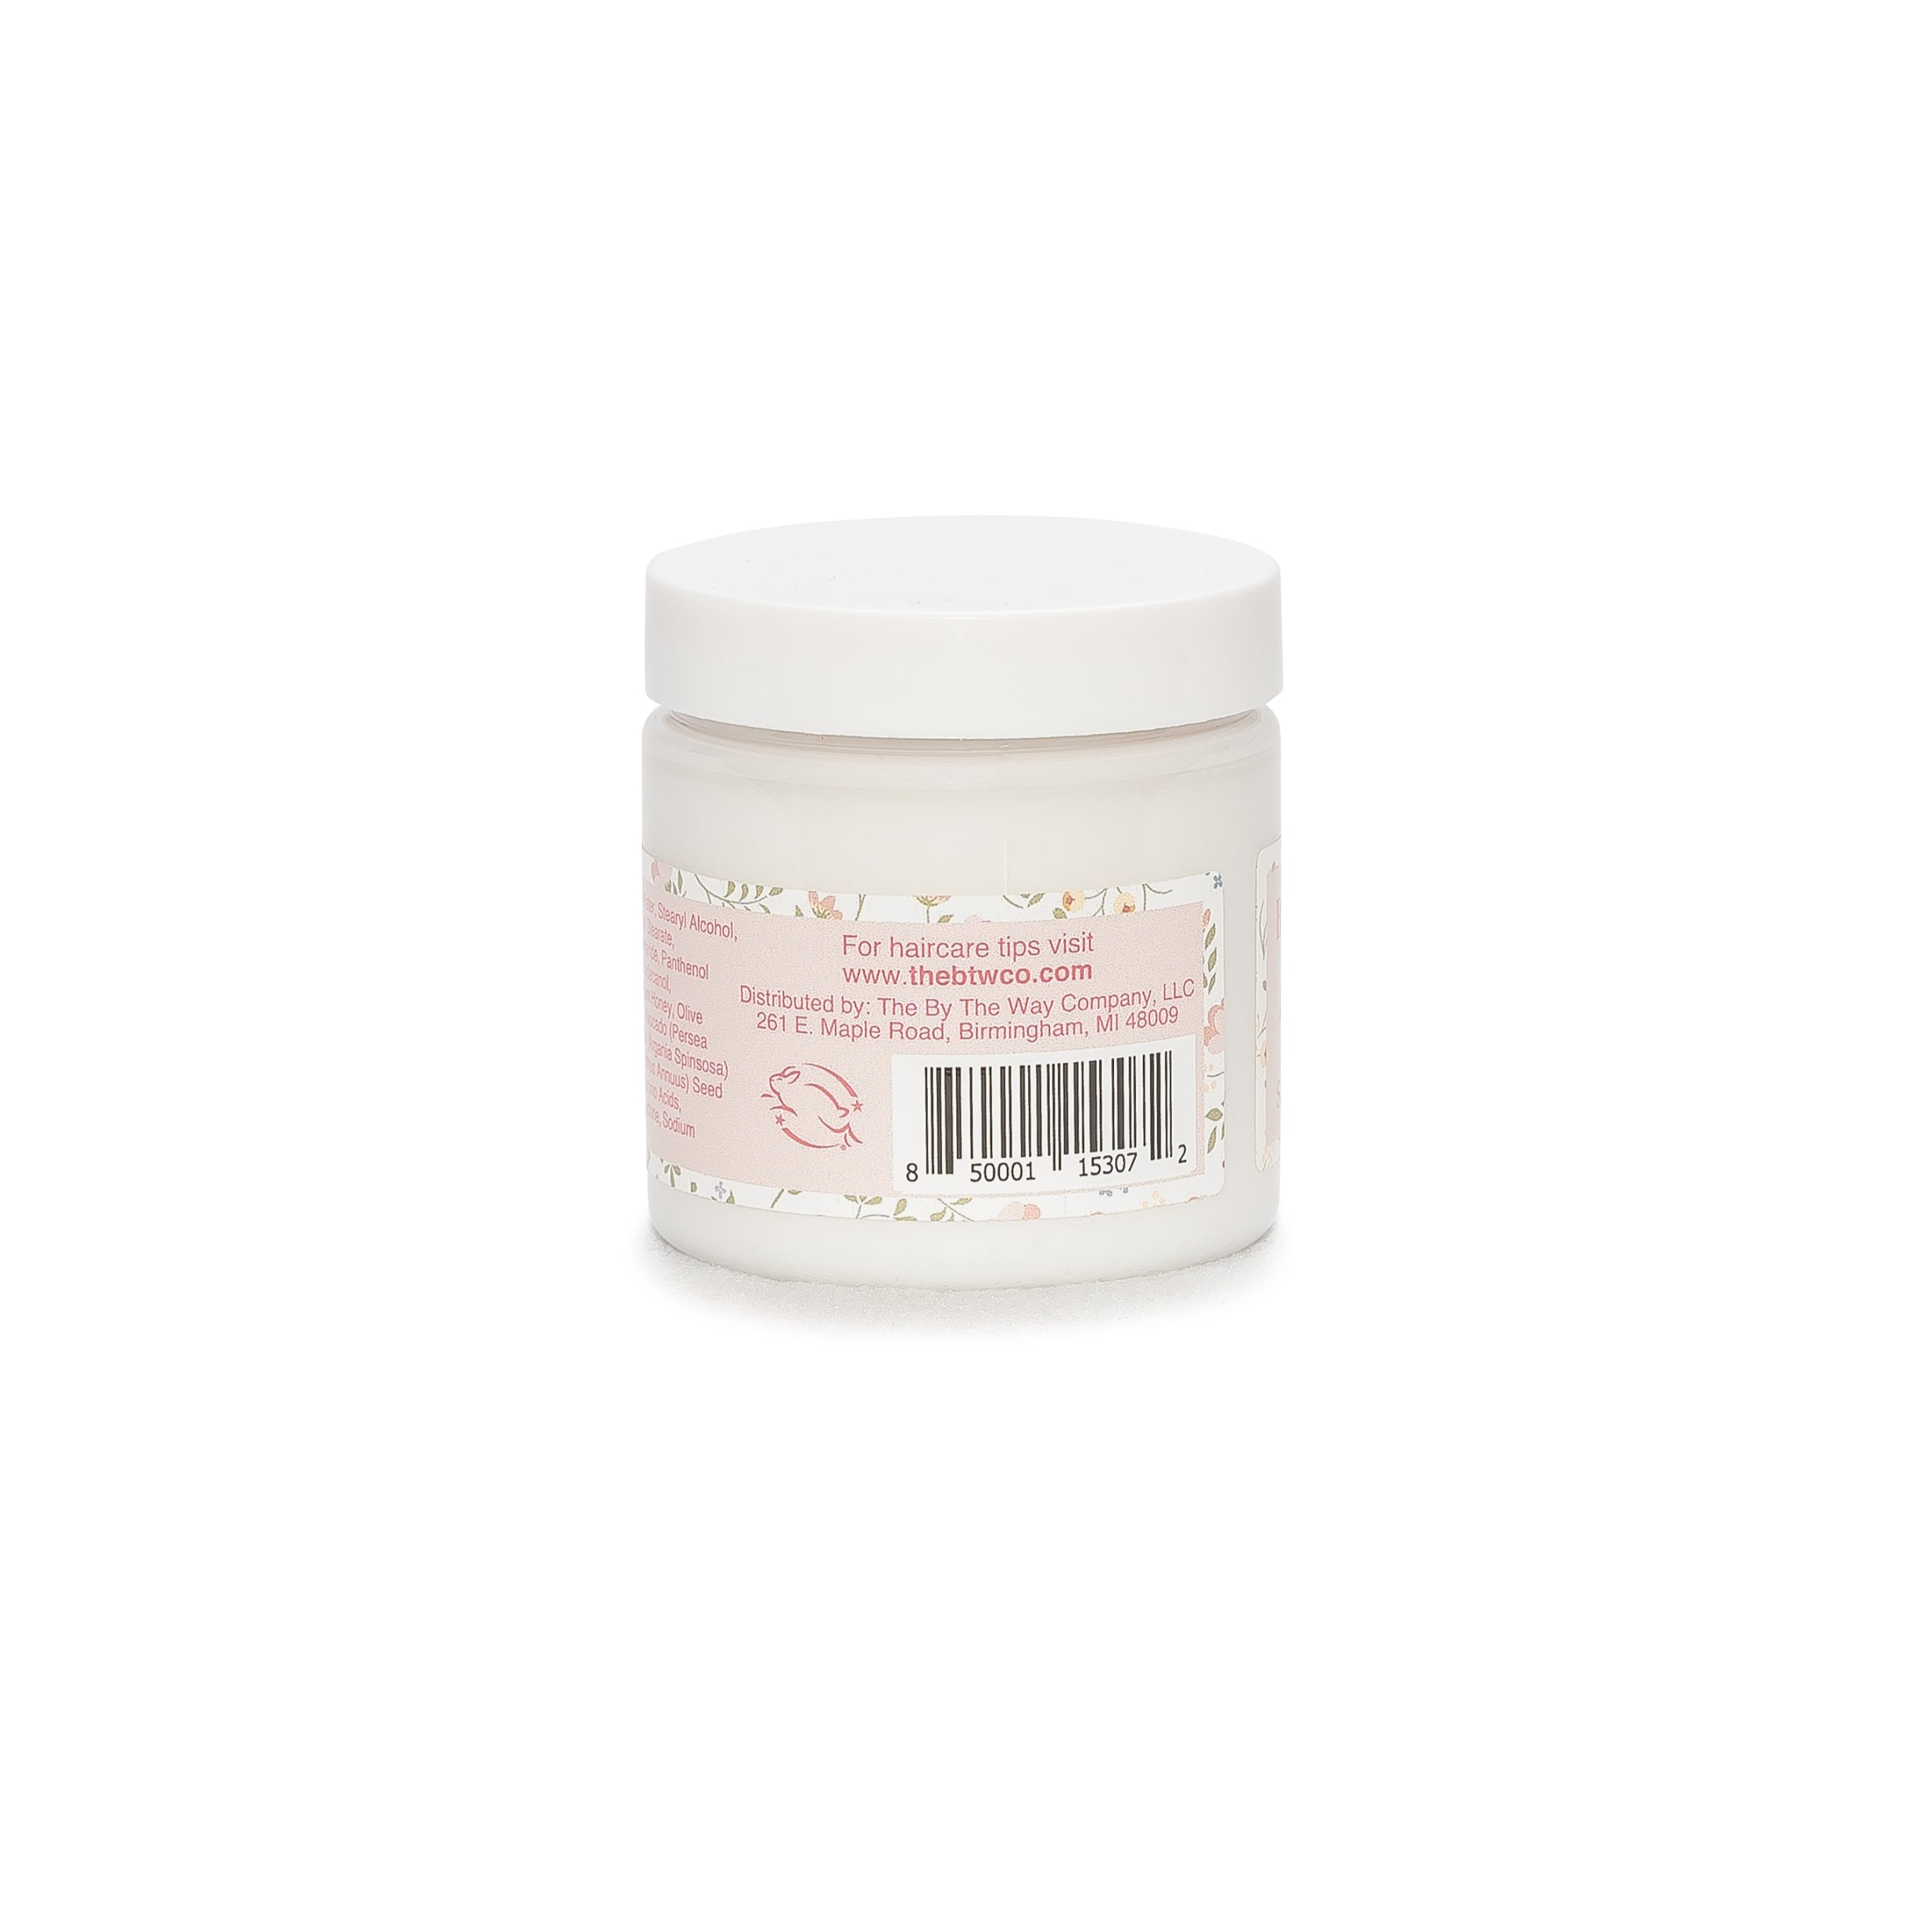 Silicone-Free Styling Cream